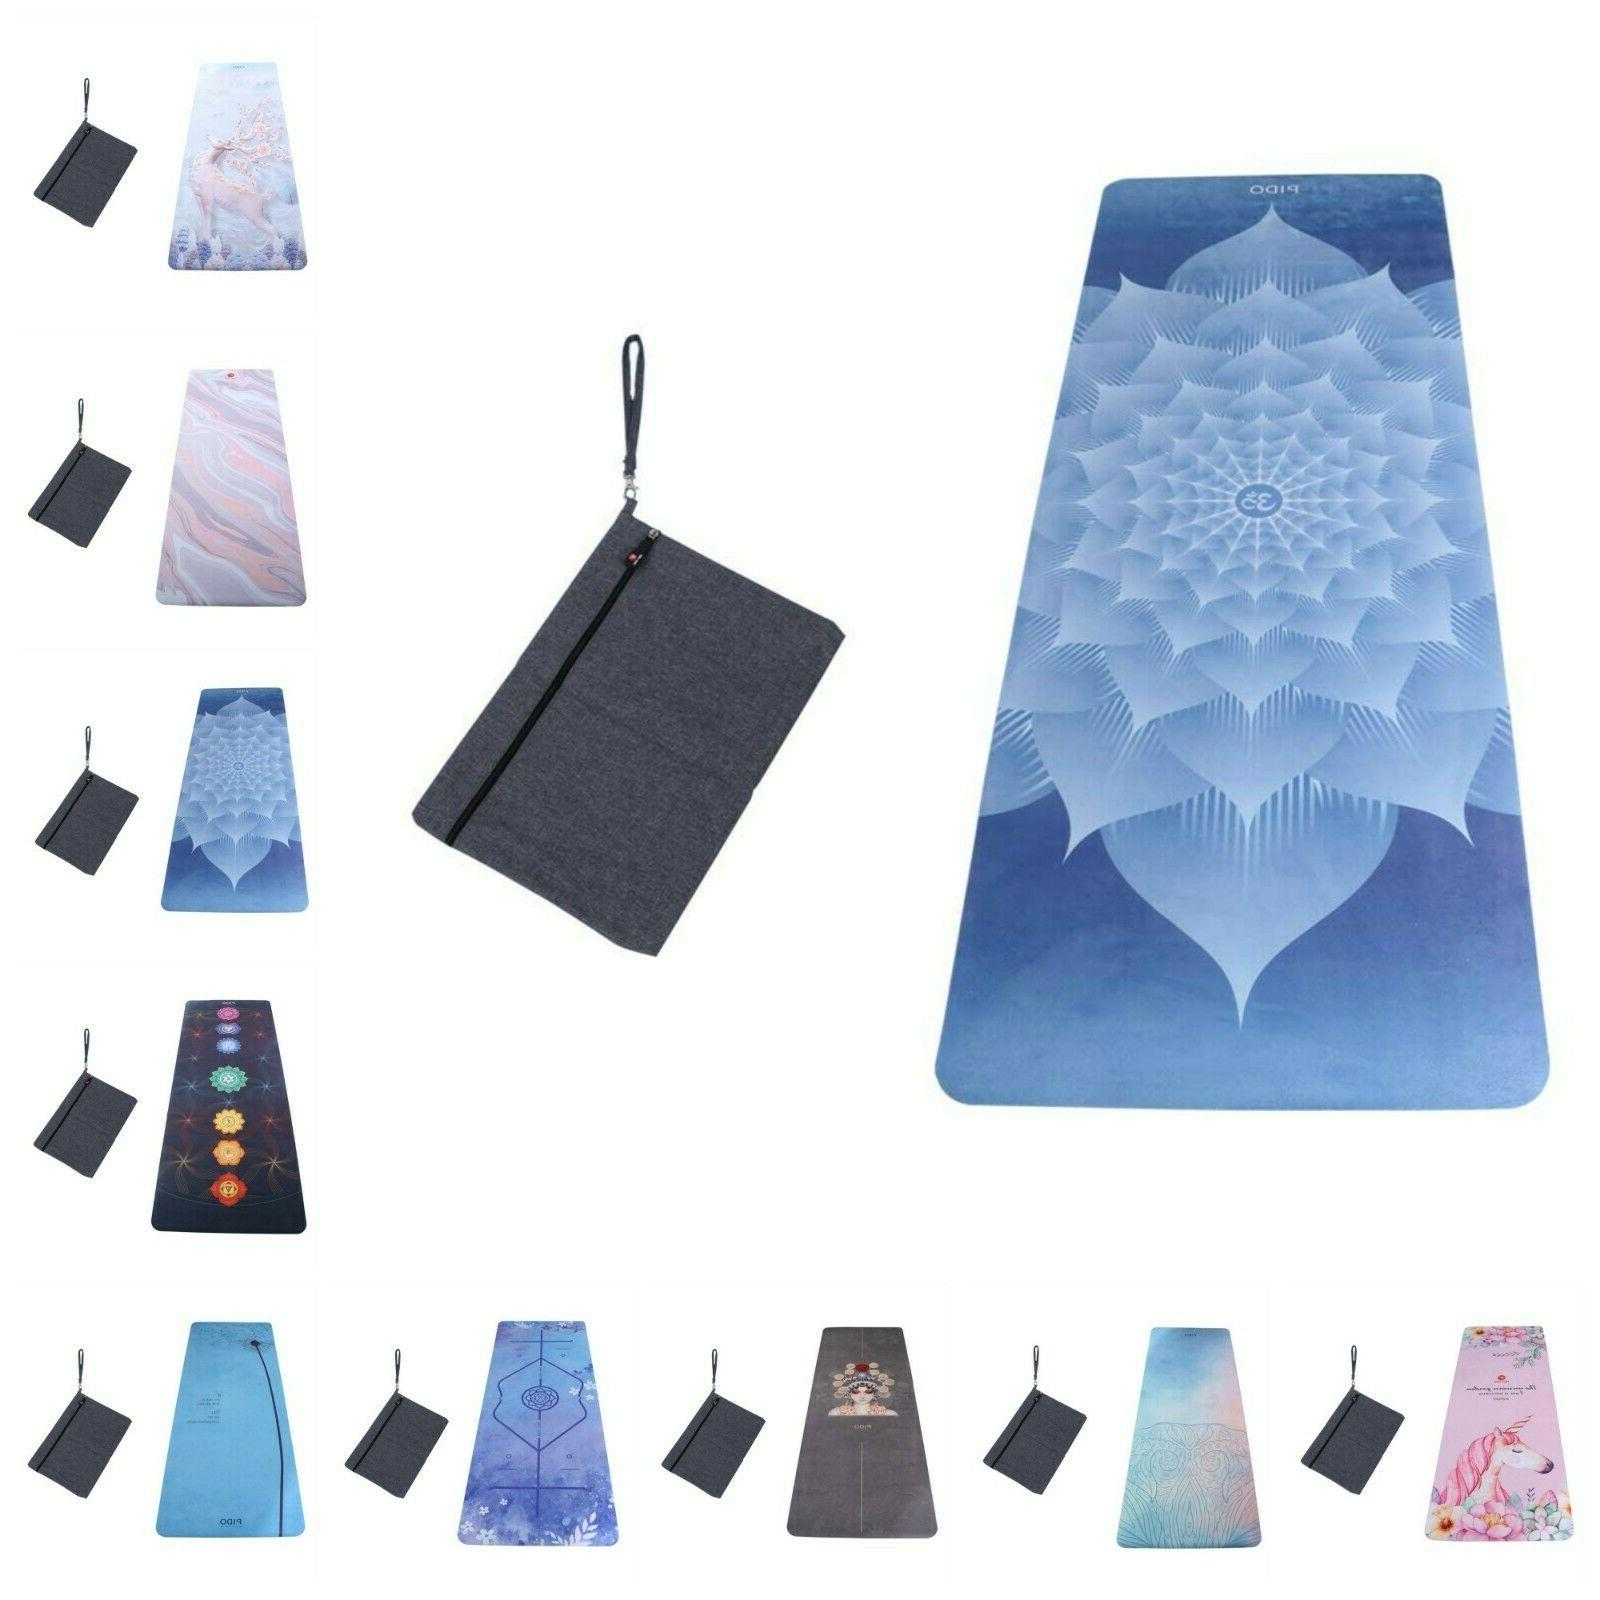 Rubber Yoga Mat Ultra Thin Yoga Pilates Exercise Fitness Gym